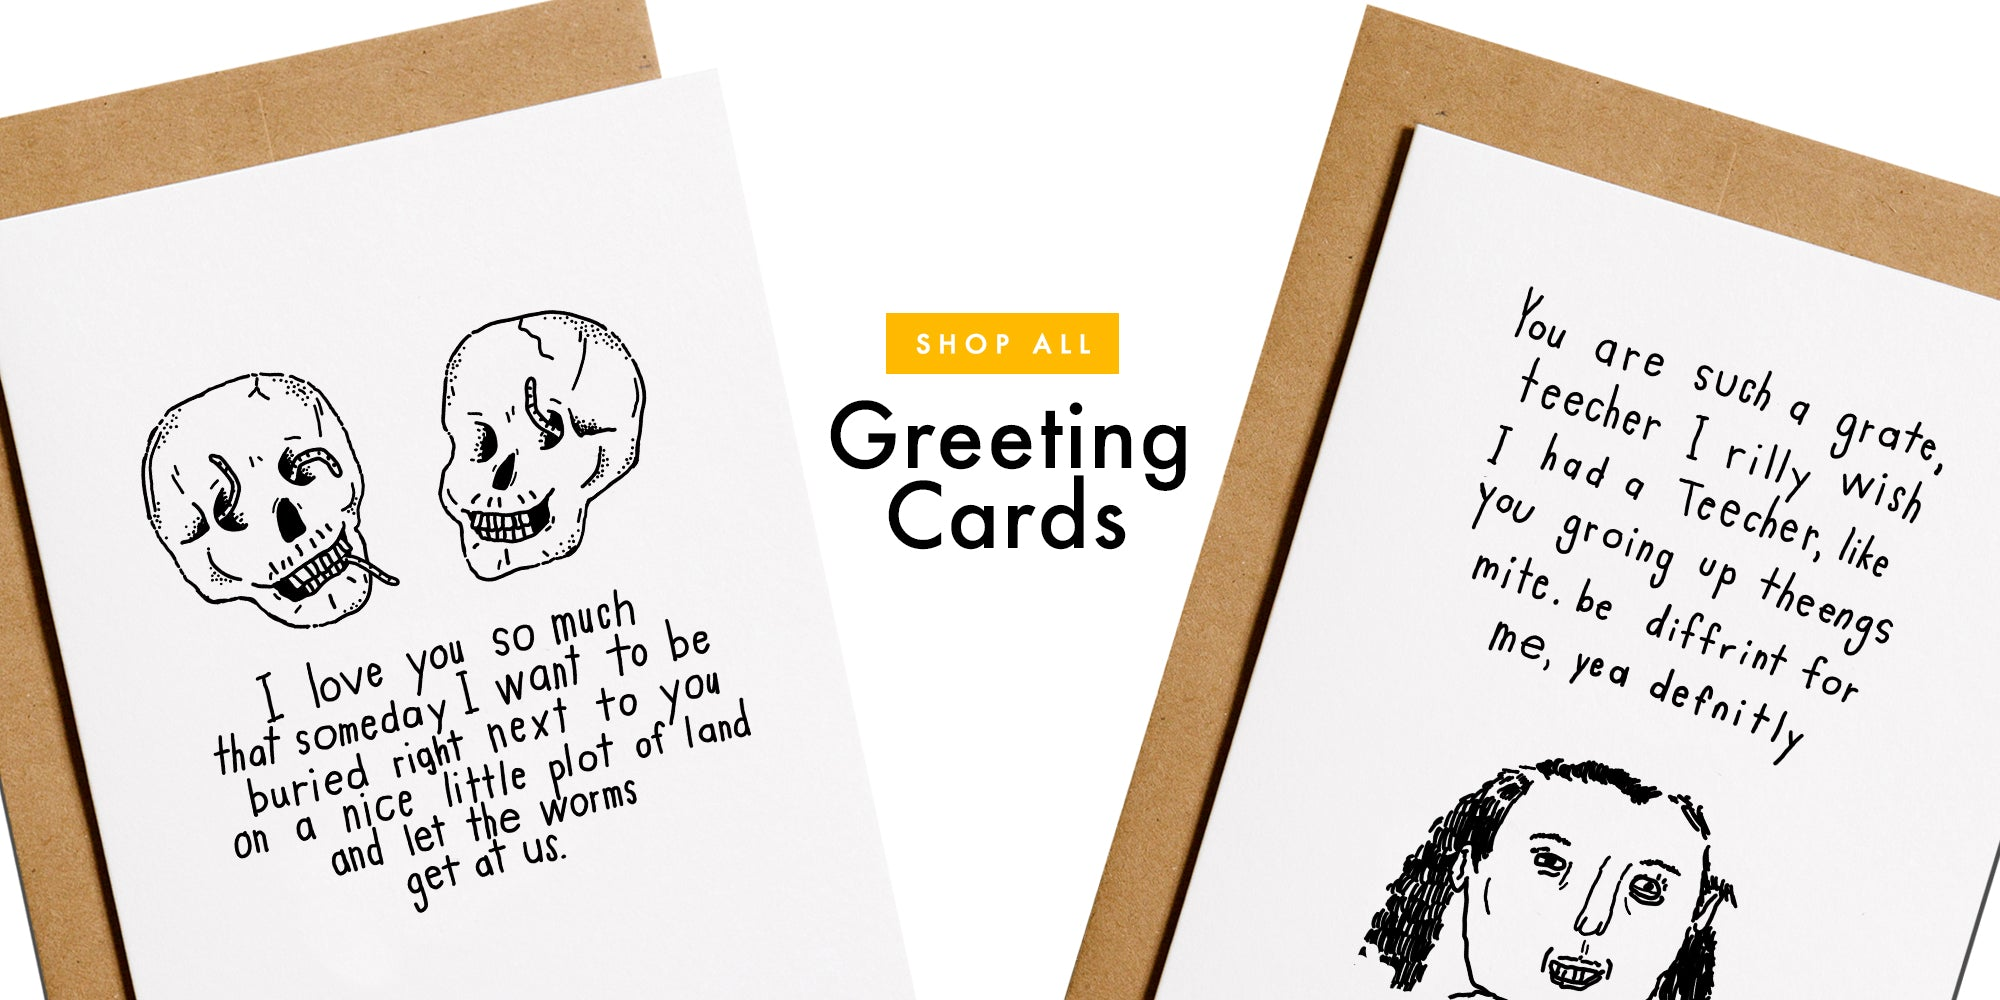 Shop All Greeting Cards